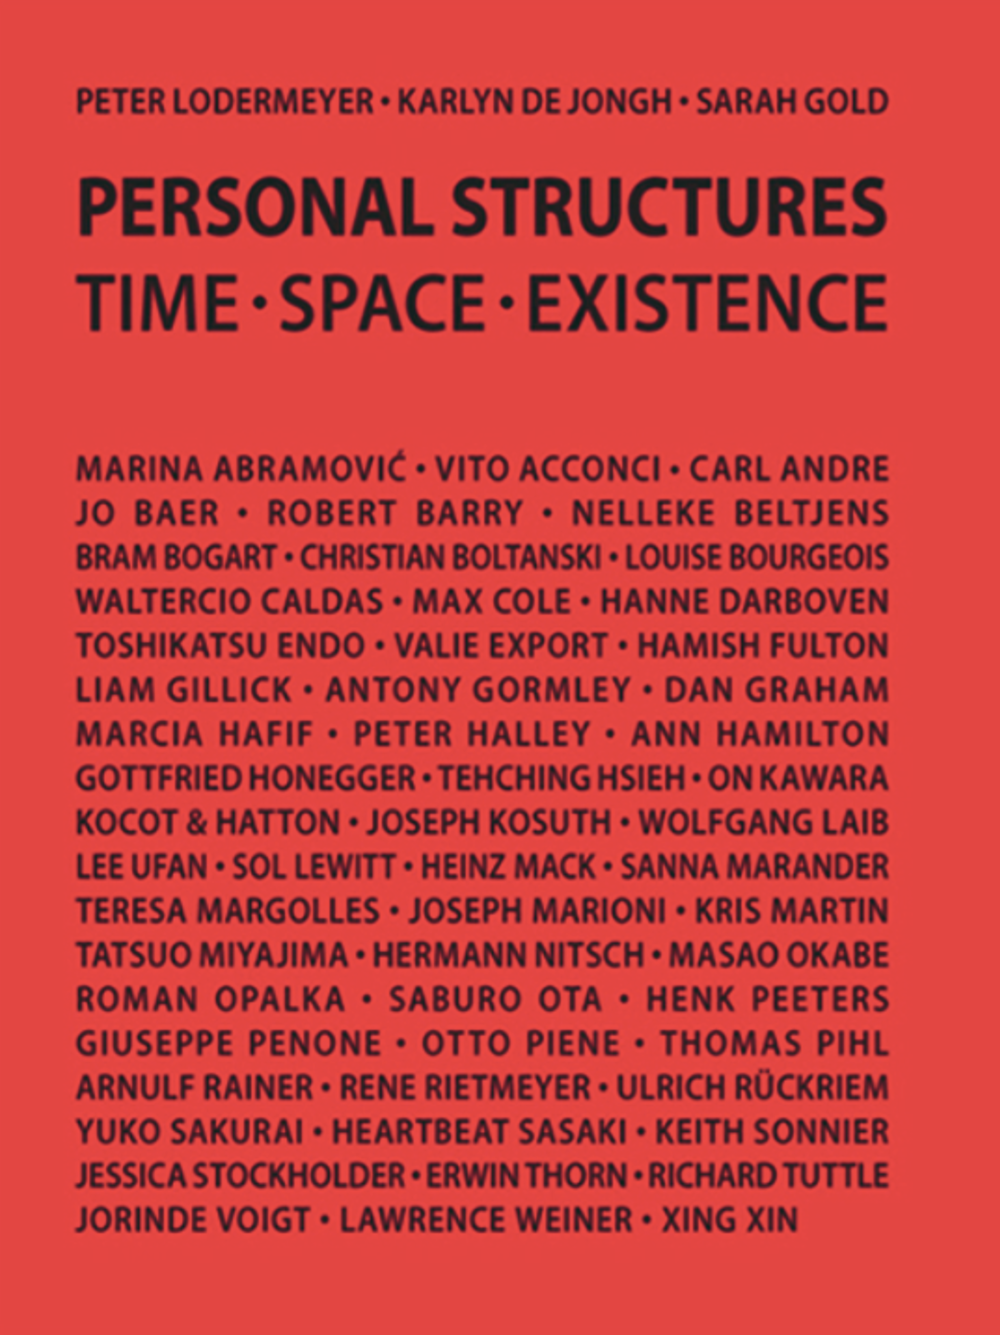 Personal Structures,TIME • SPACE • EXISTENCE  – click on image to read full article